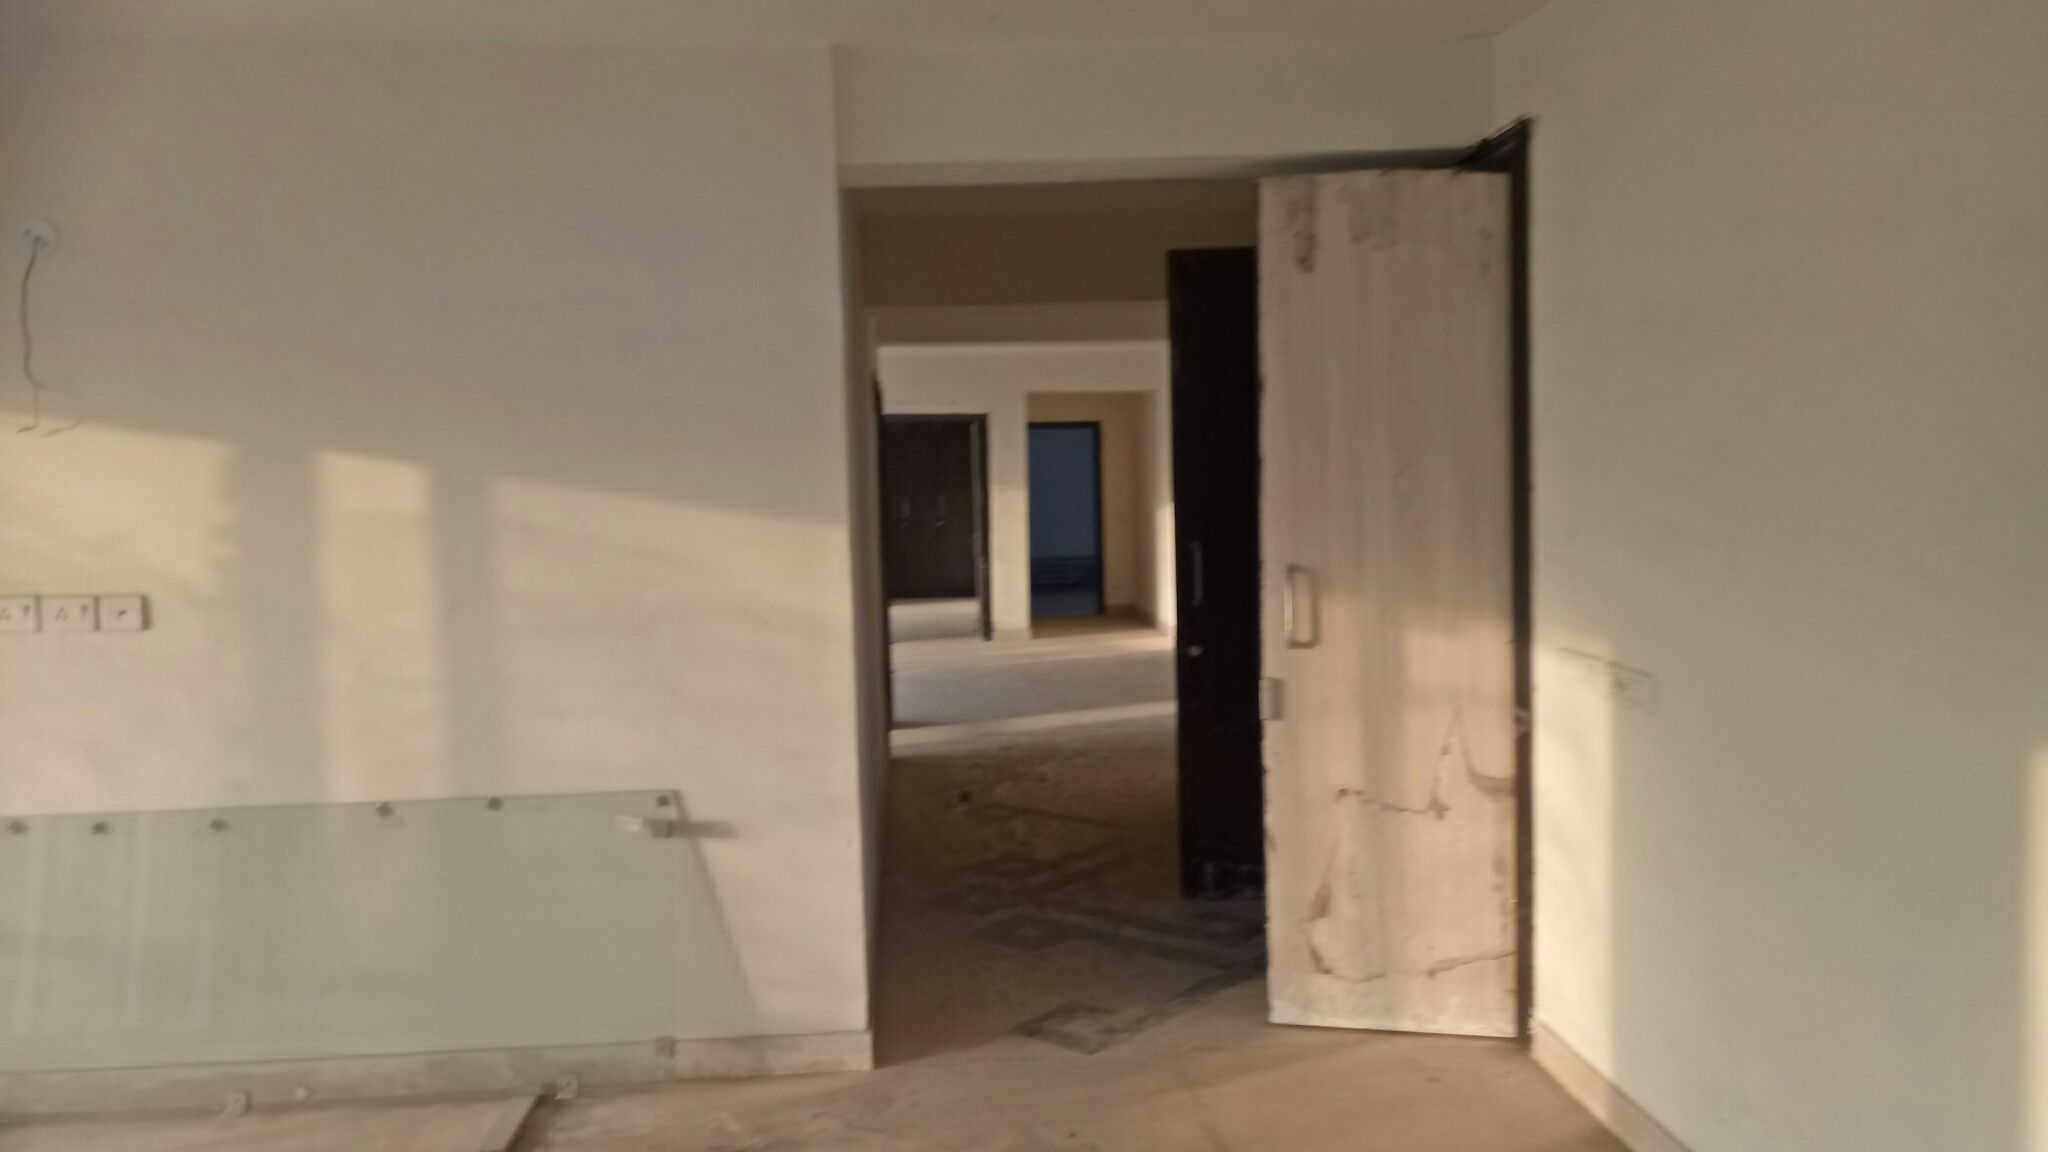 Contact Us 8510070061 Home Office House Showroom Hospital Residential Commercial Building Old Renovation Res Home Renovation Renovations Remodeling Renovation